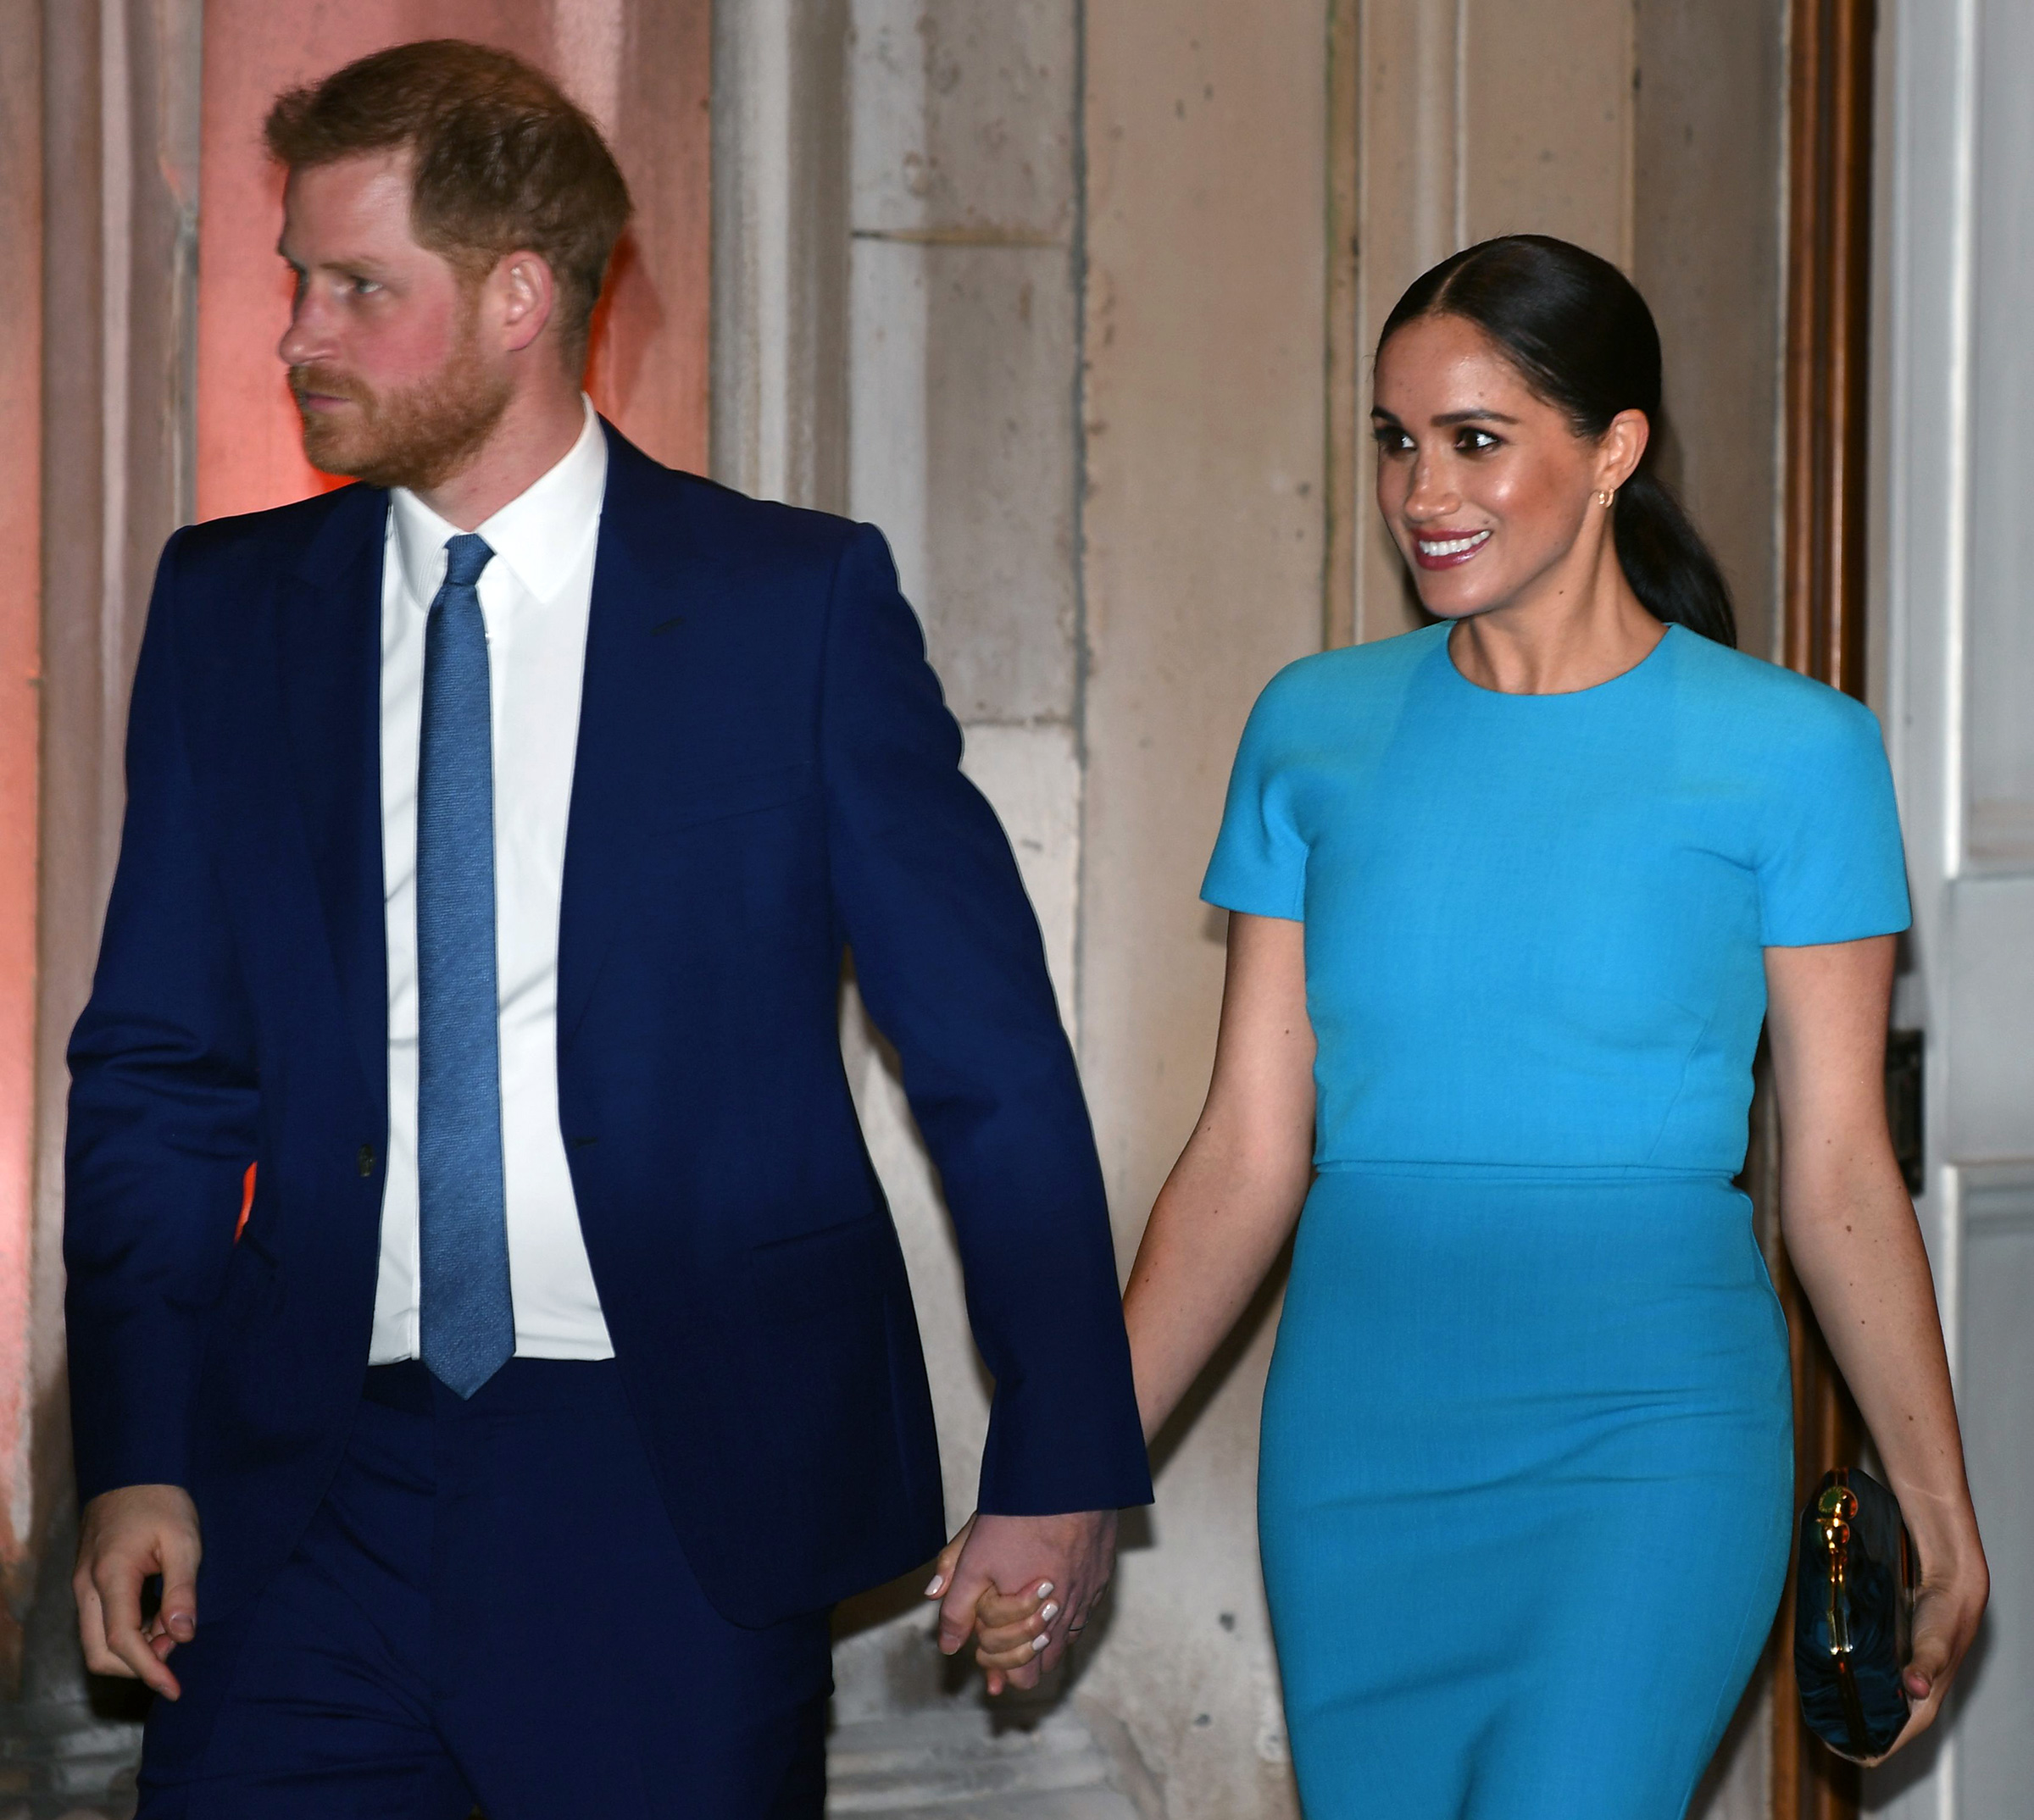 Prince Harry and Meghan Markle leave after attending the Endeavour Fund Awards at Mansion House in London on March 5, 2020.